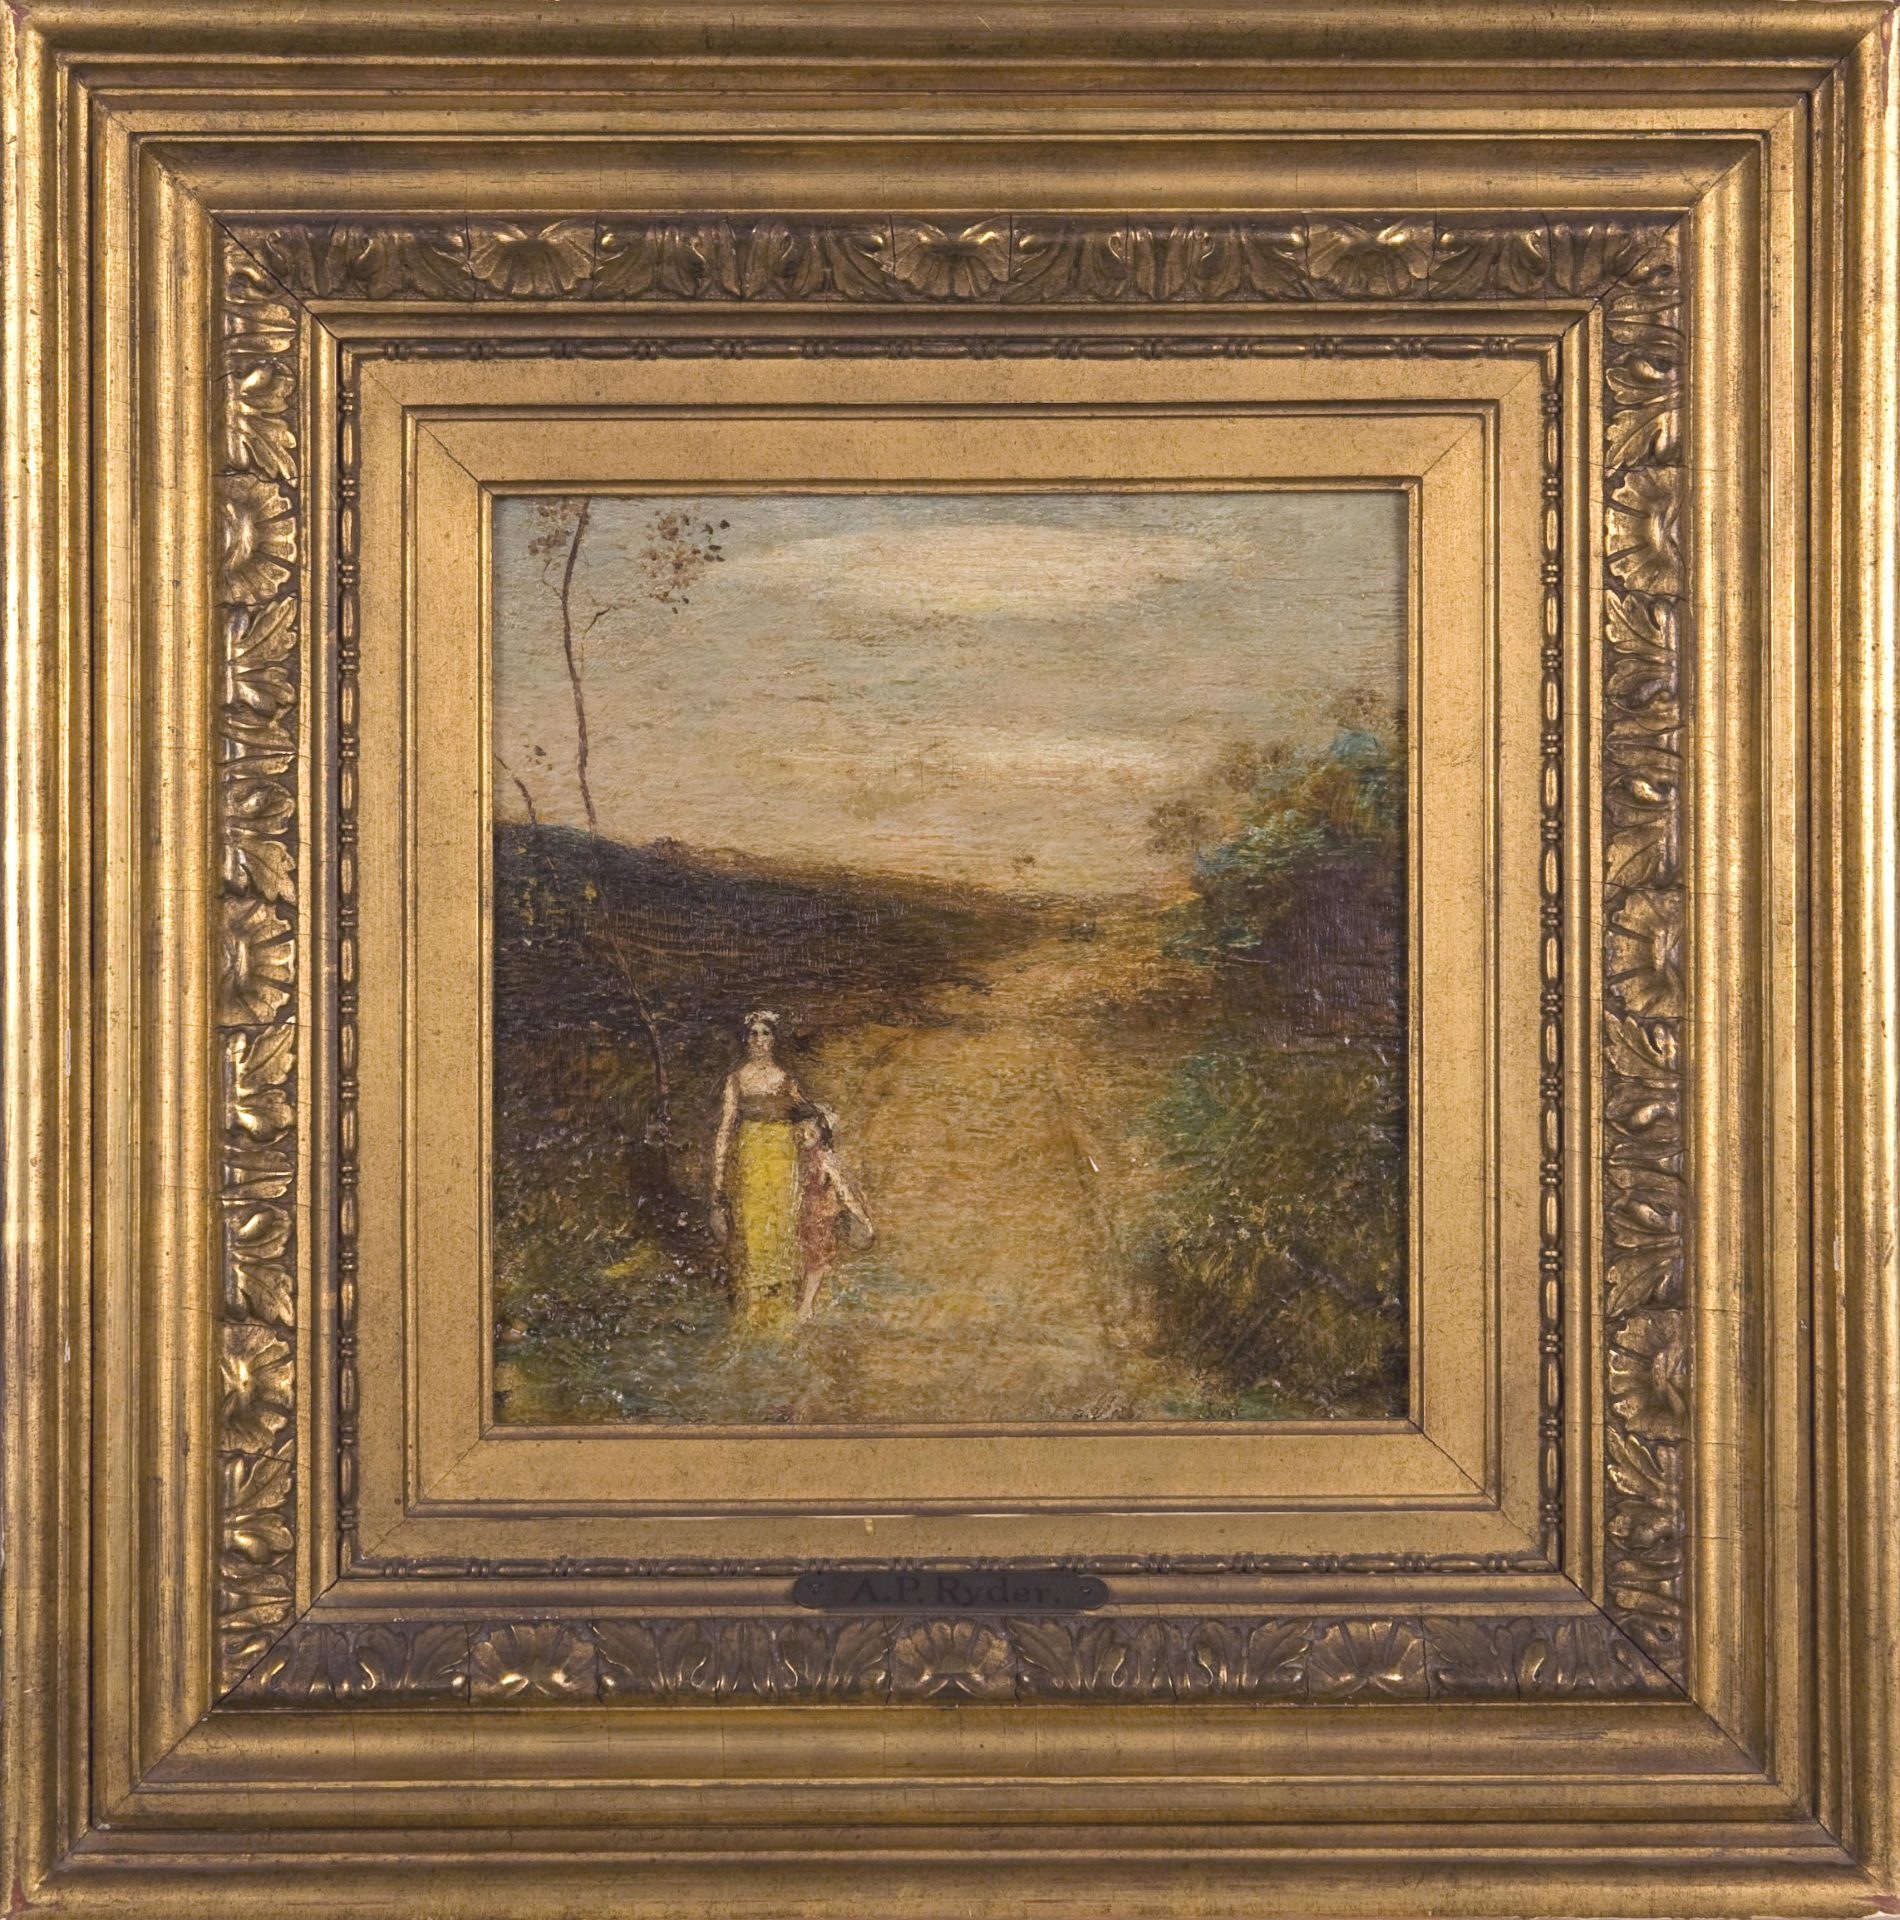 Ryder_LANDSCAPE_WOMAN_AND_CHILD